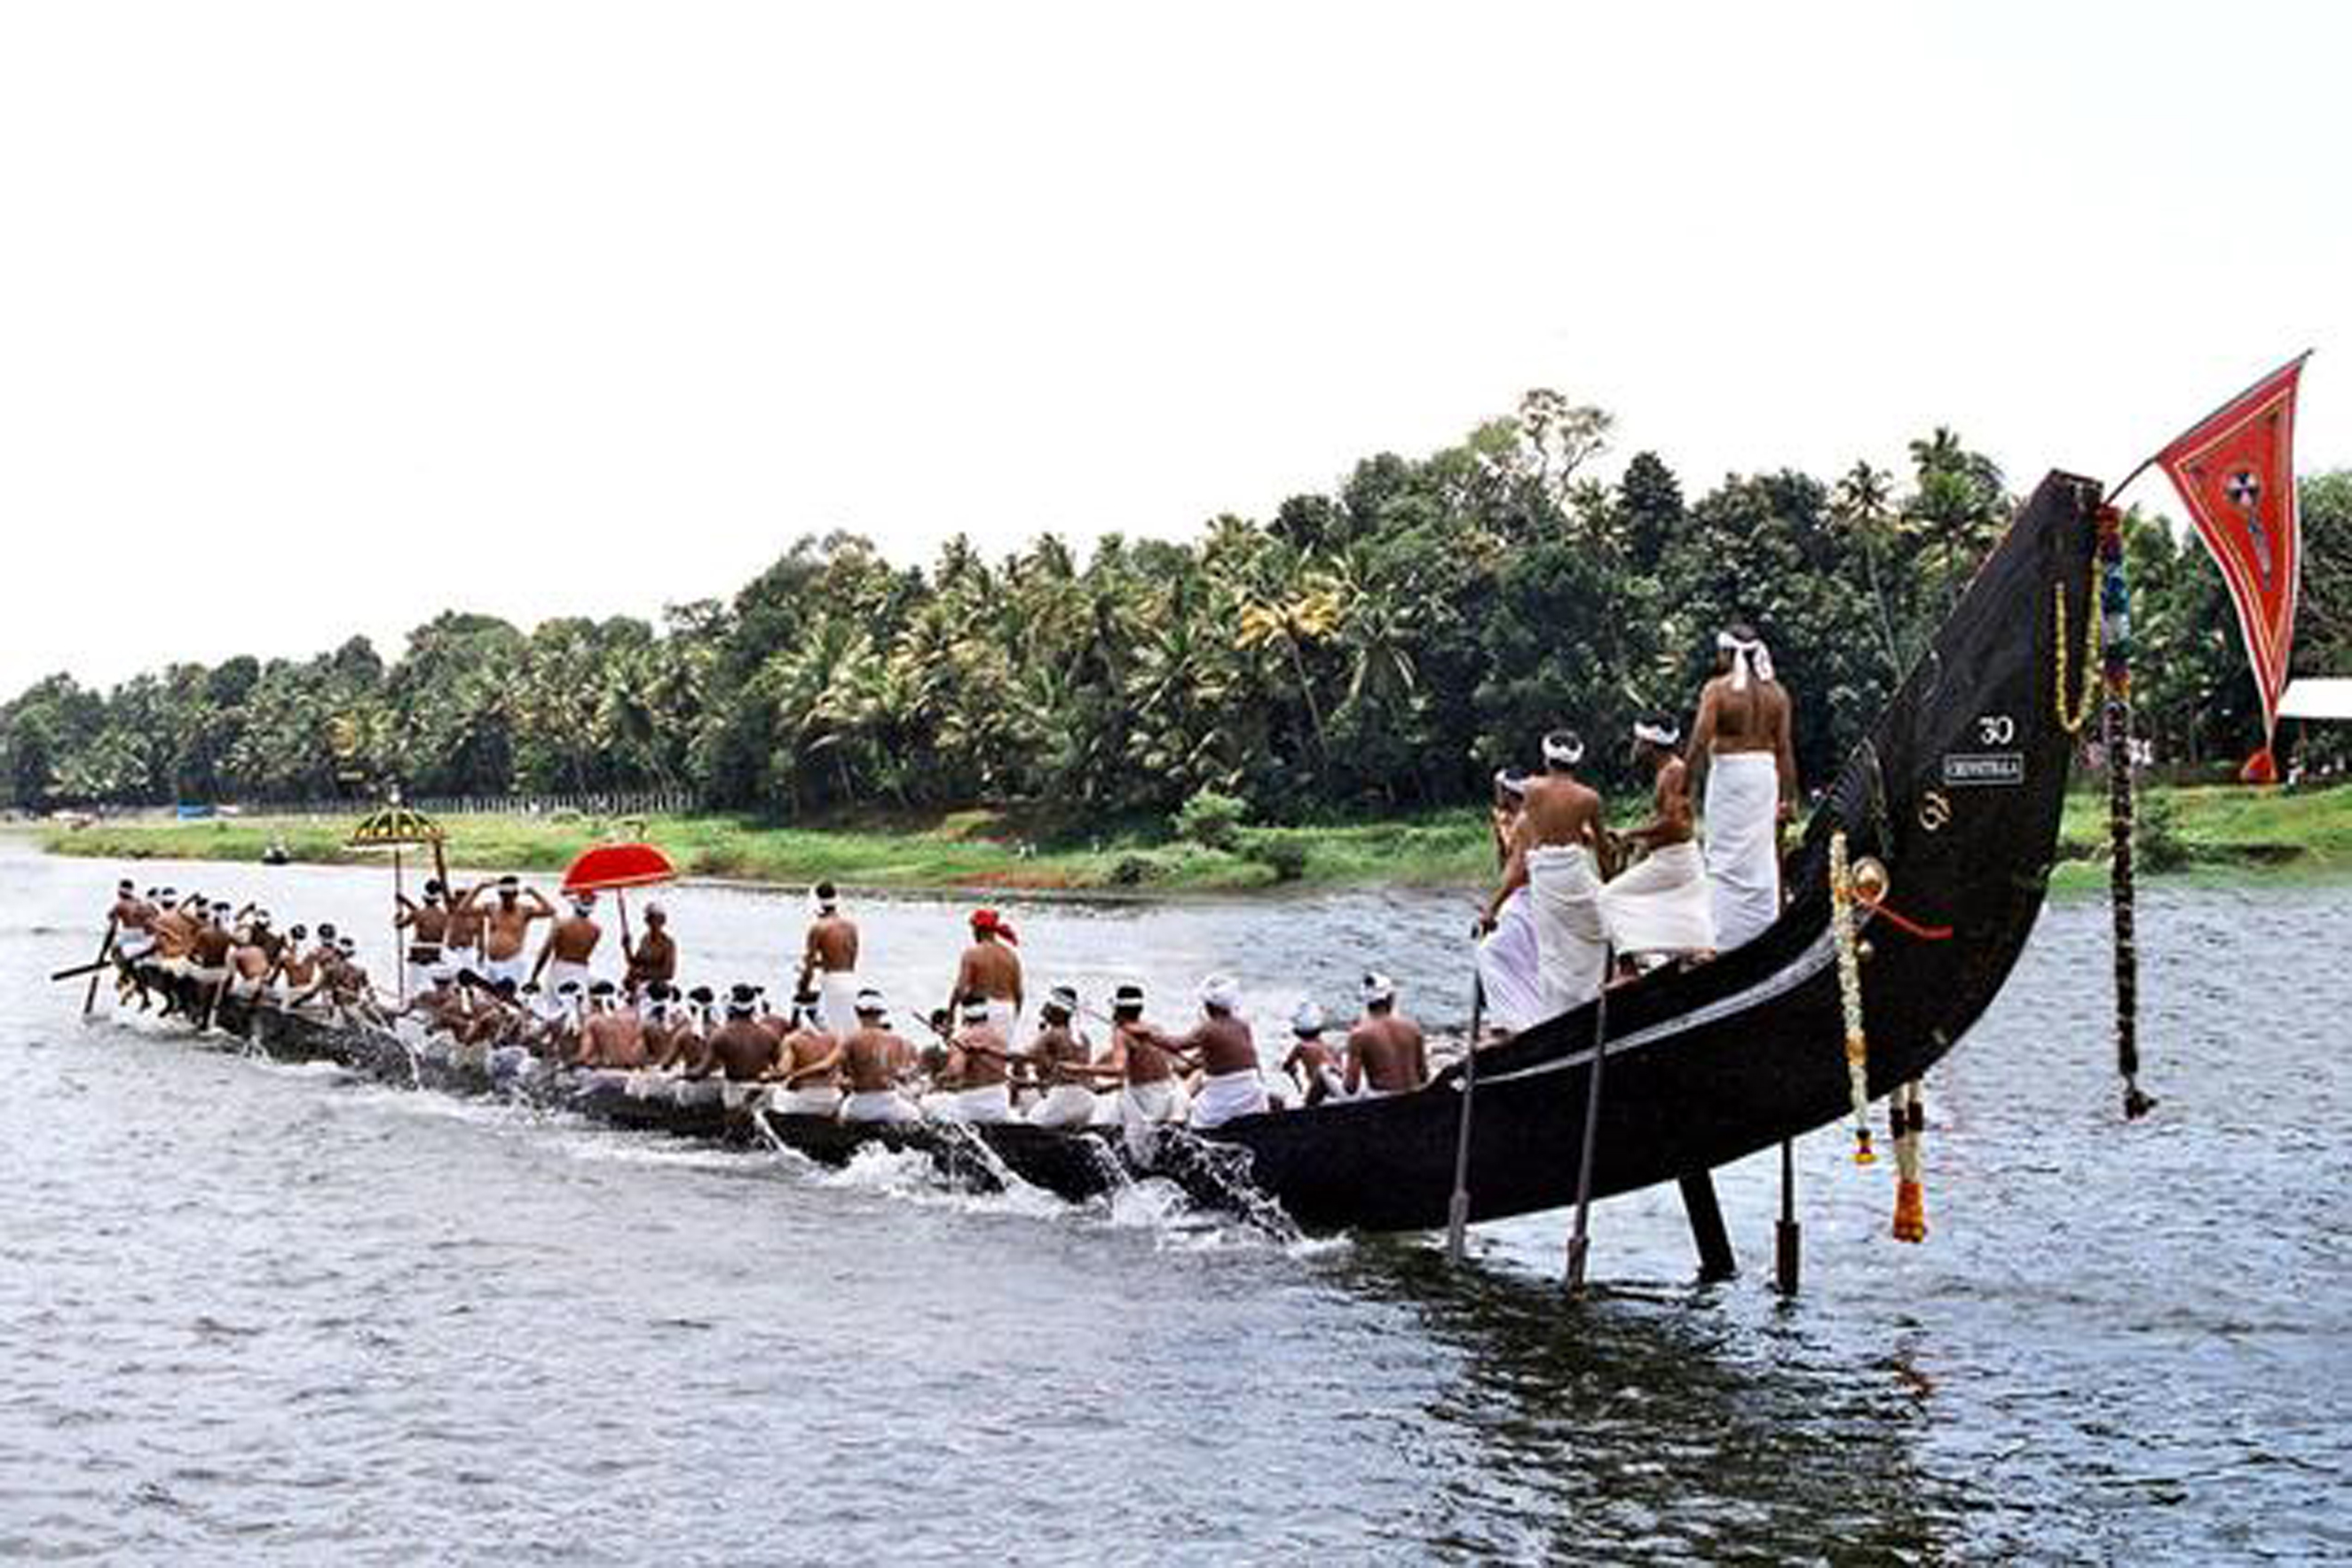 a look at the onam festival of kerala If you are looking to get a glimpse of the grand festivals of kerala, you wouldn't  want to miss onam (marking the homecoming of king mahabali), vishu (the.